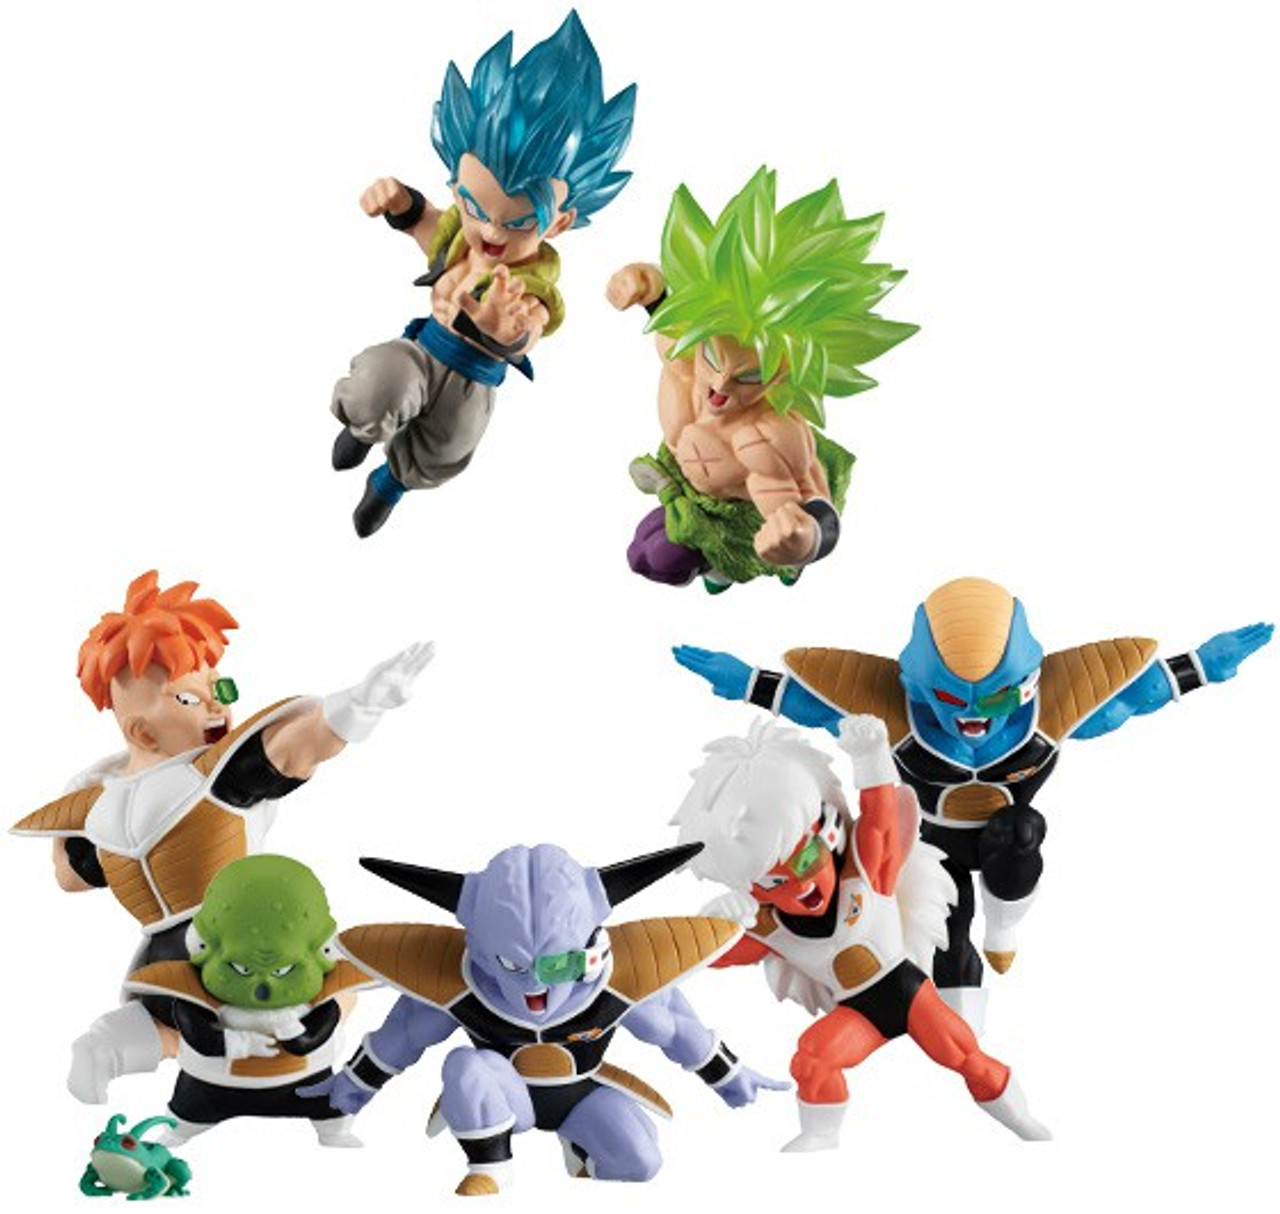 Dragon Ball Mini Figure Action Set Statue Display Mini Toys Model Collection